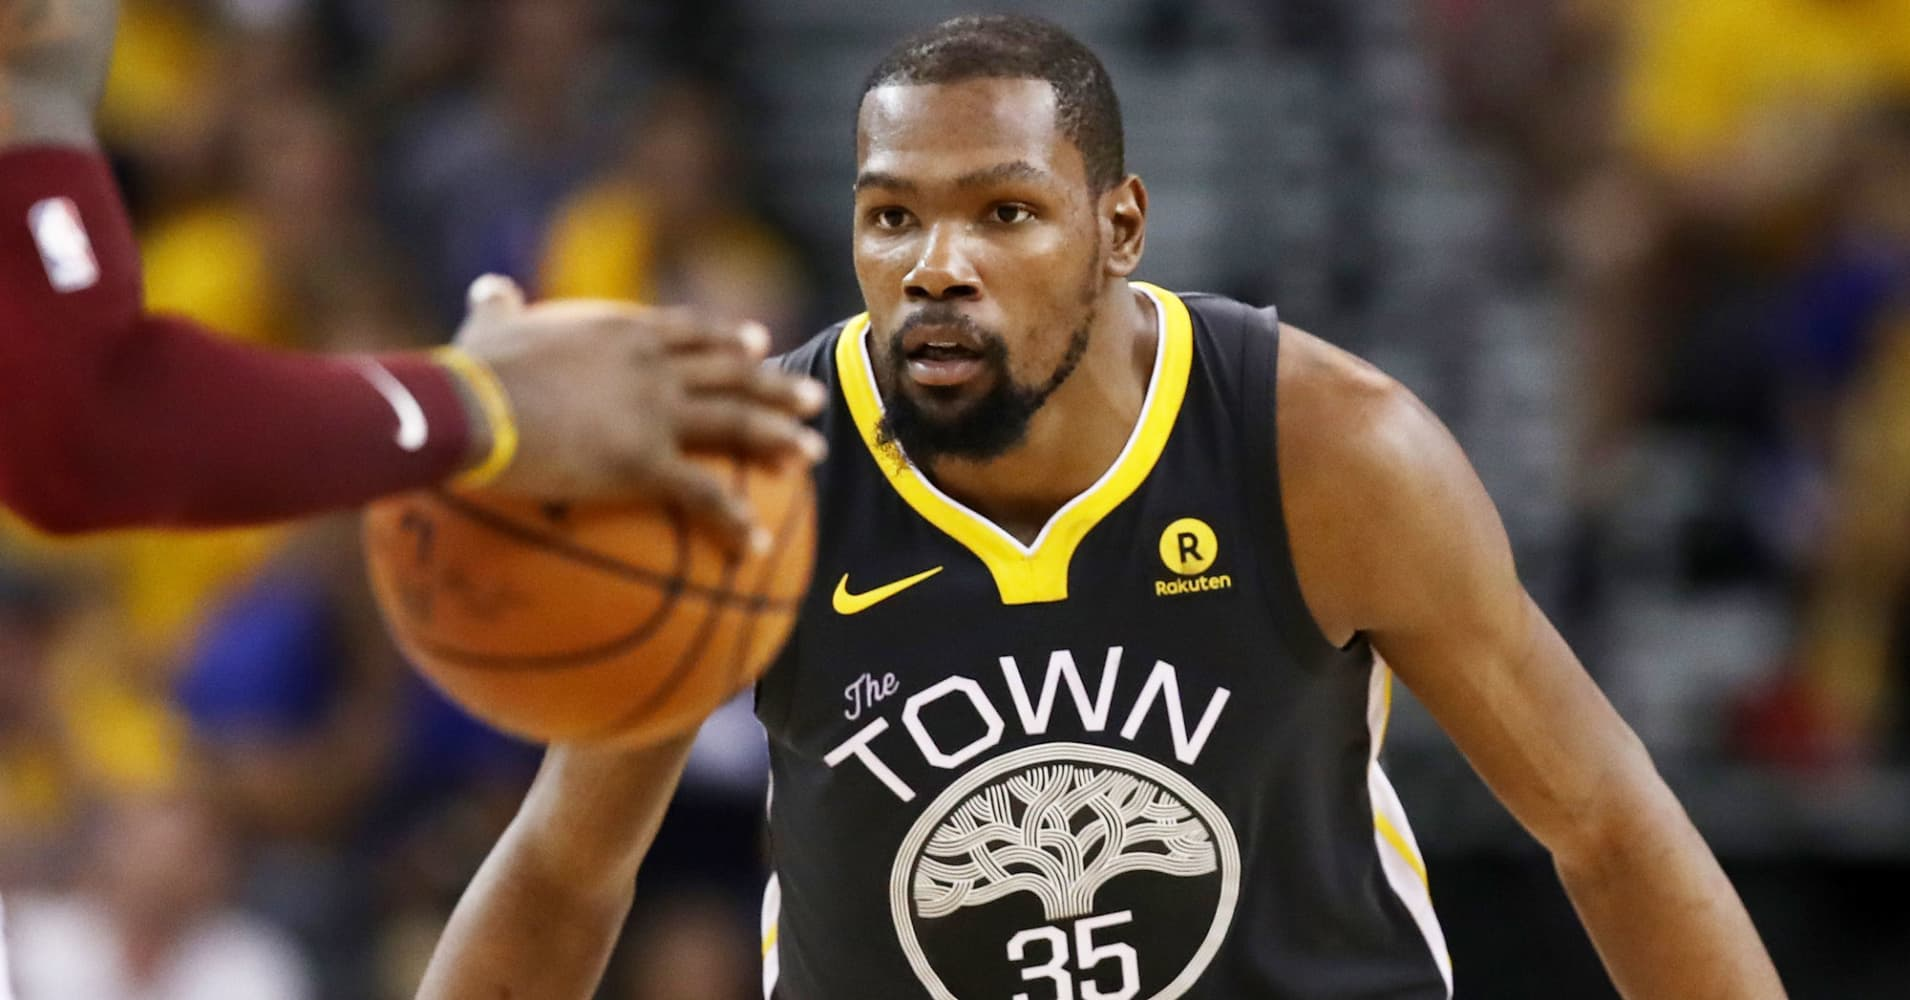 kevin-durant-35-of-the-golden-state-warriors-defends-against-lebron-james-of-the-cleveland